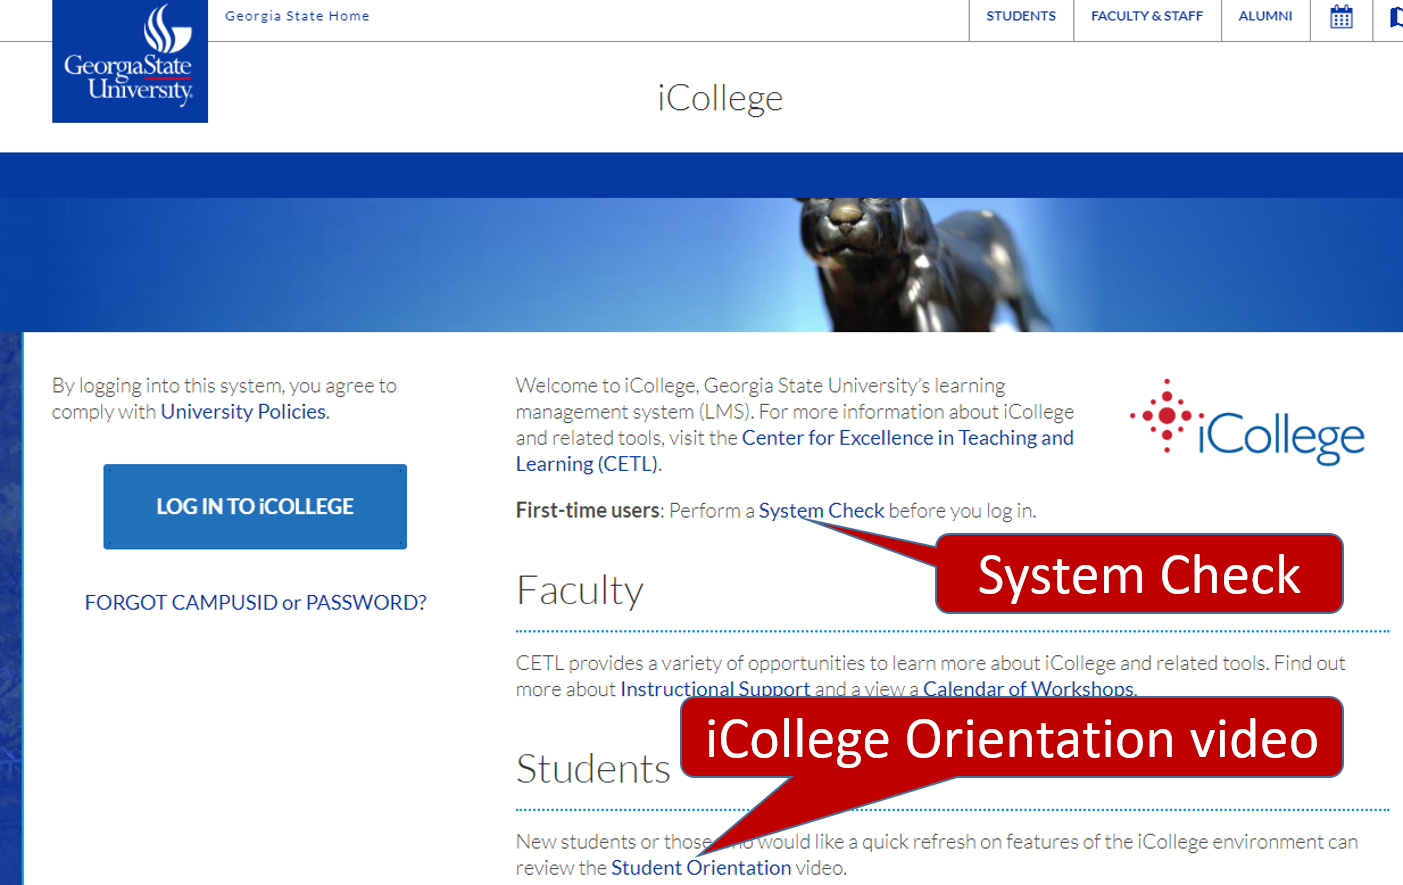 Screenshot of icollege homepage showing location of System Checker and Orientation video